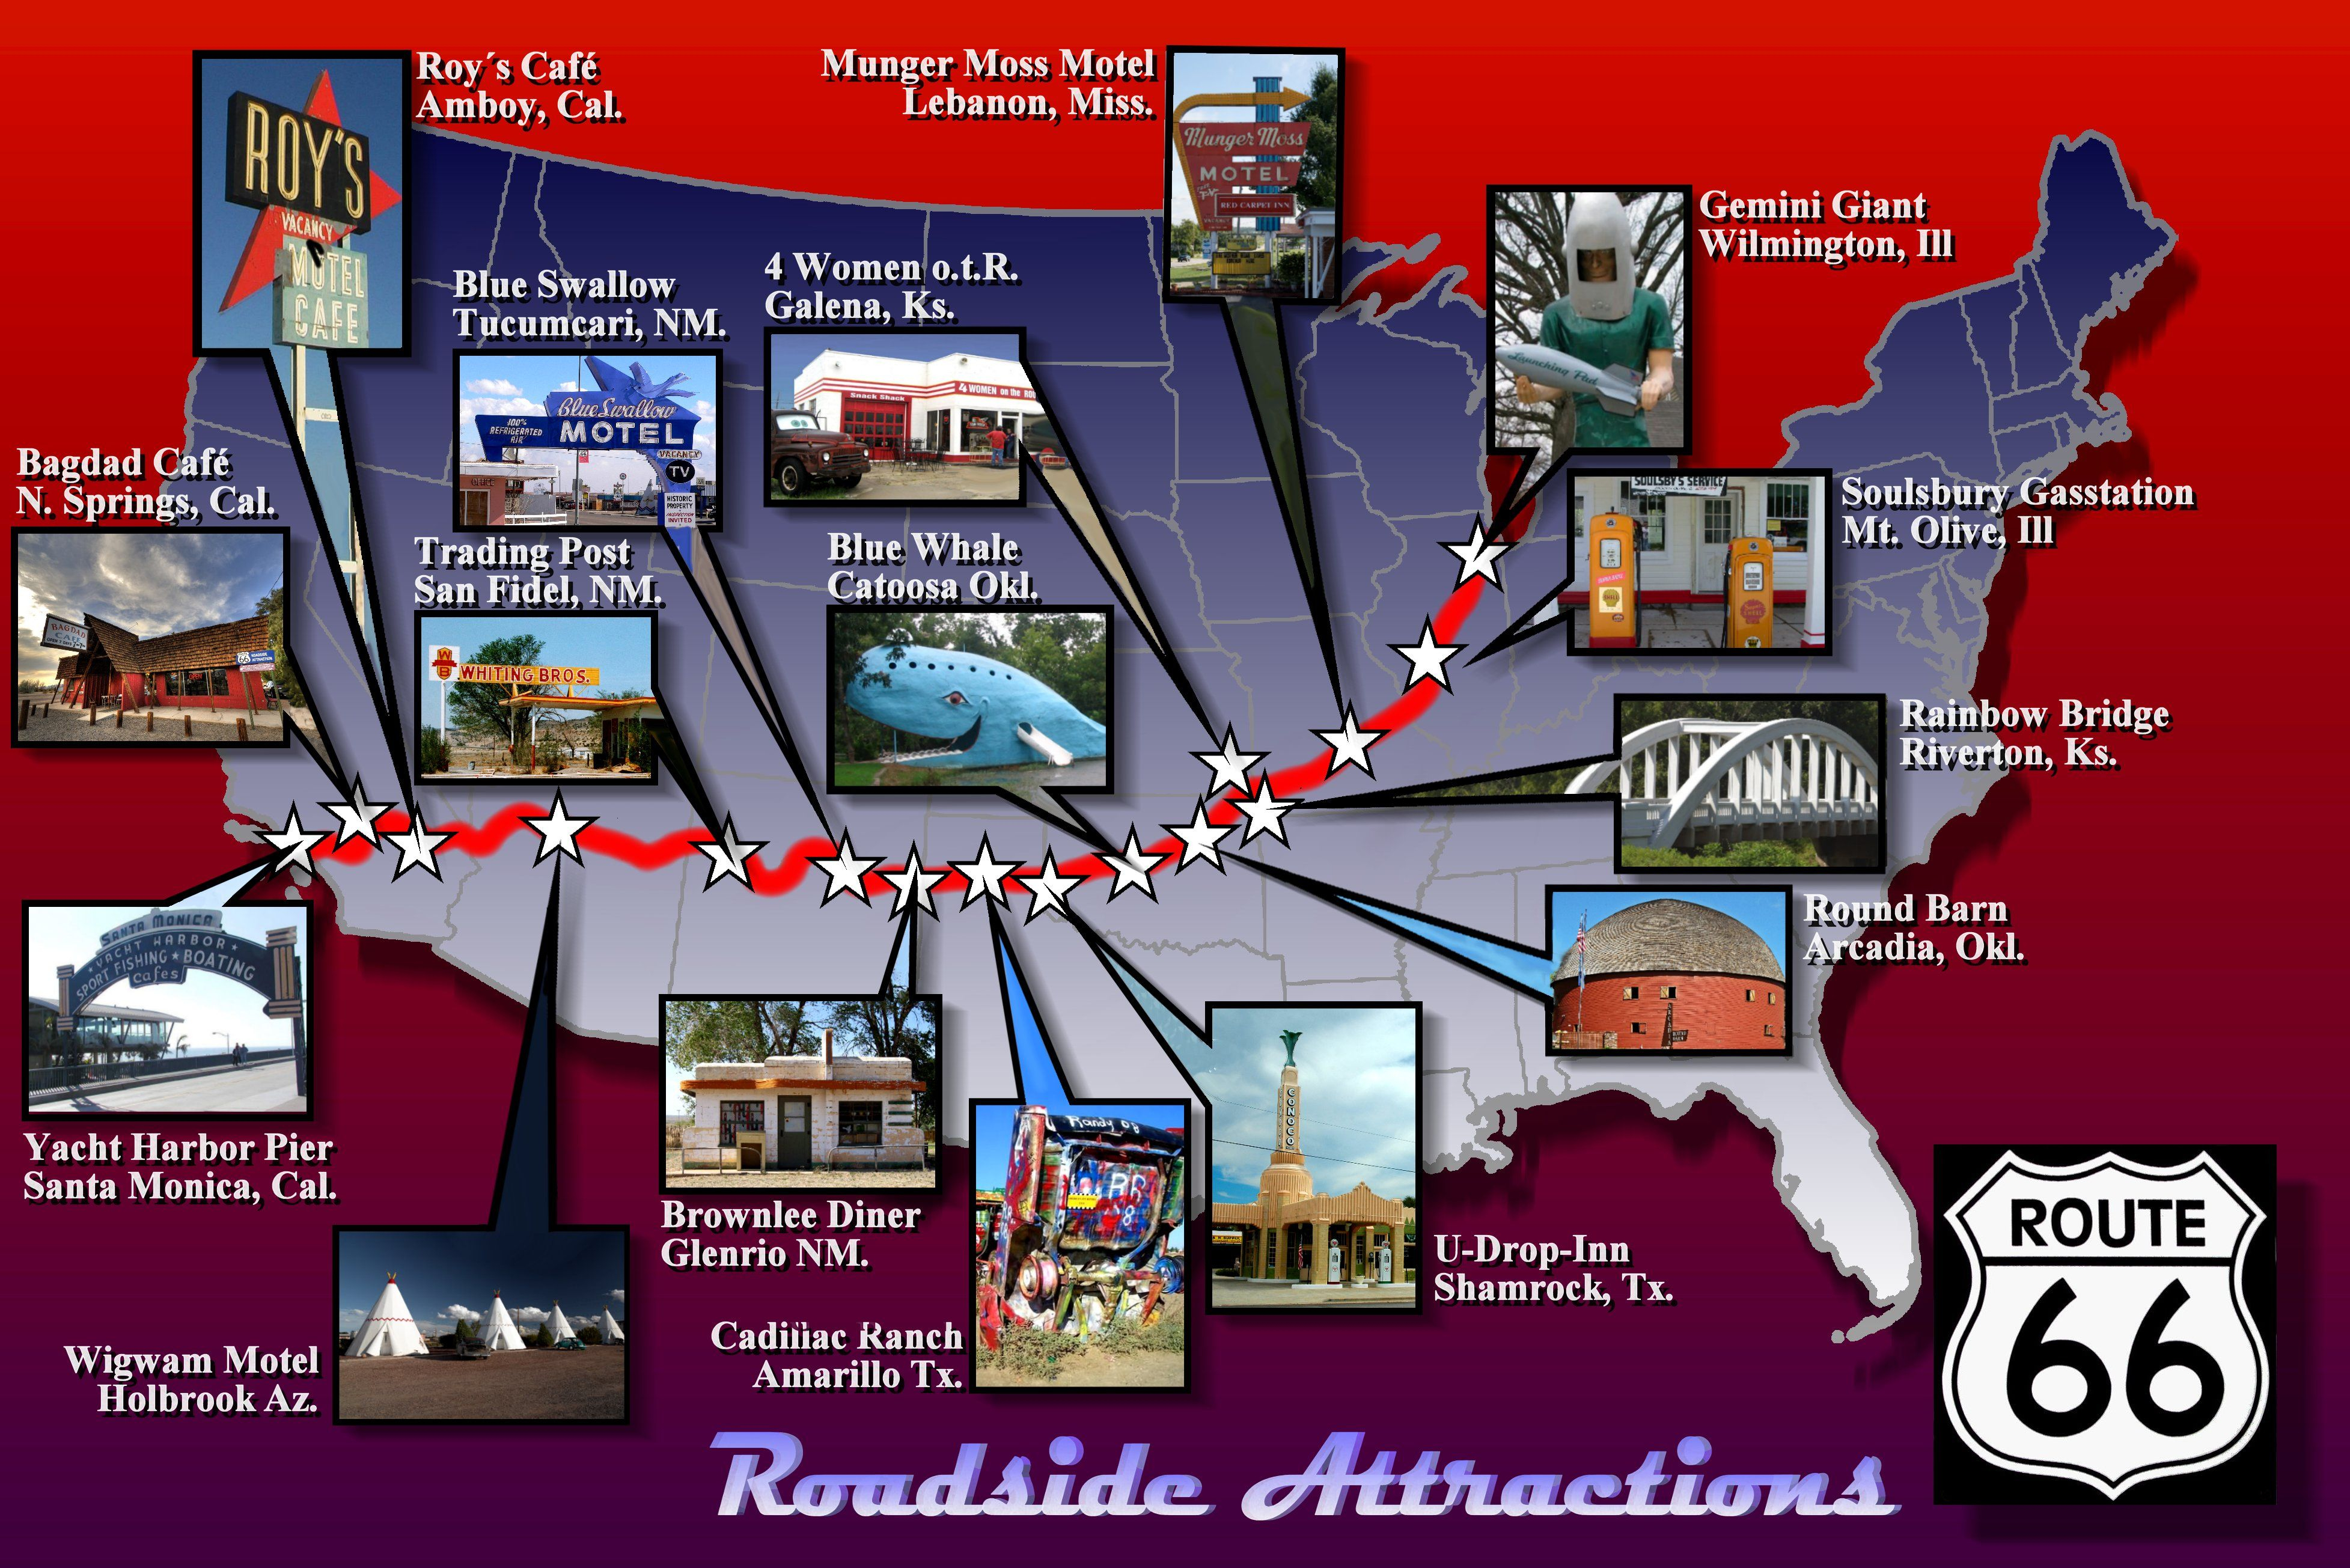 Route 66 Roadside Attractions | Route 66 | Route 66, Route 66 - Roadside Attractions Texas Map